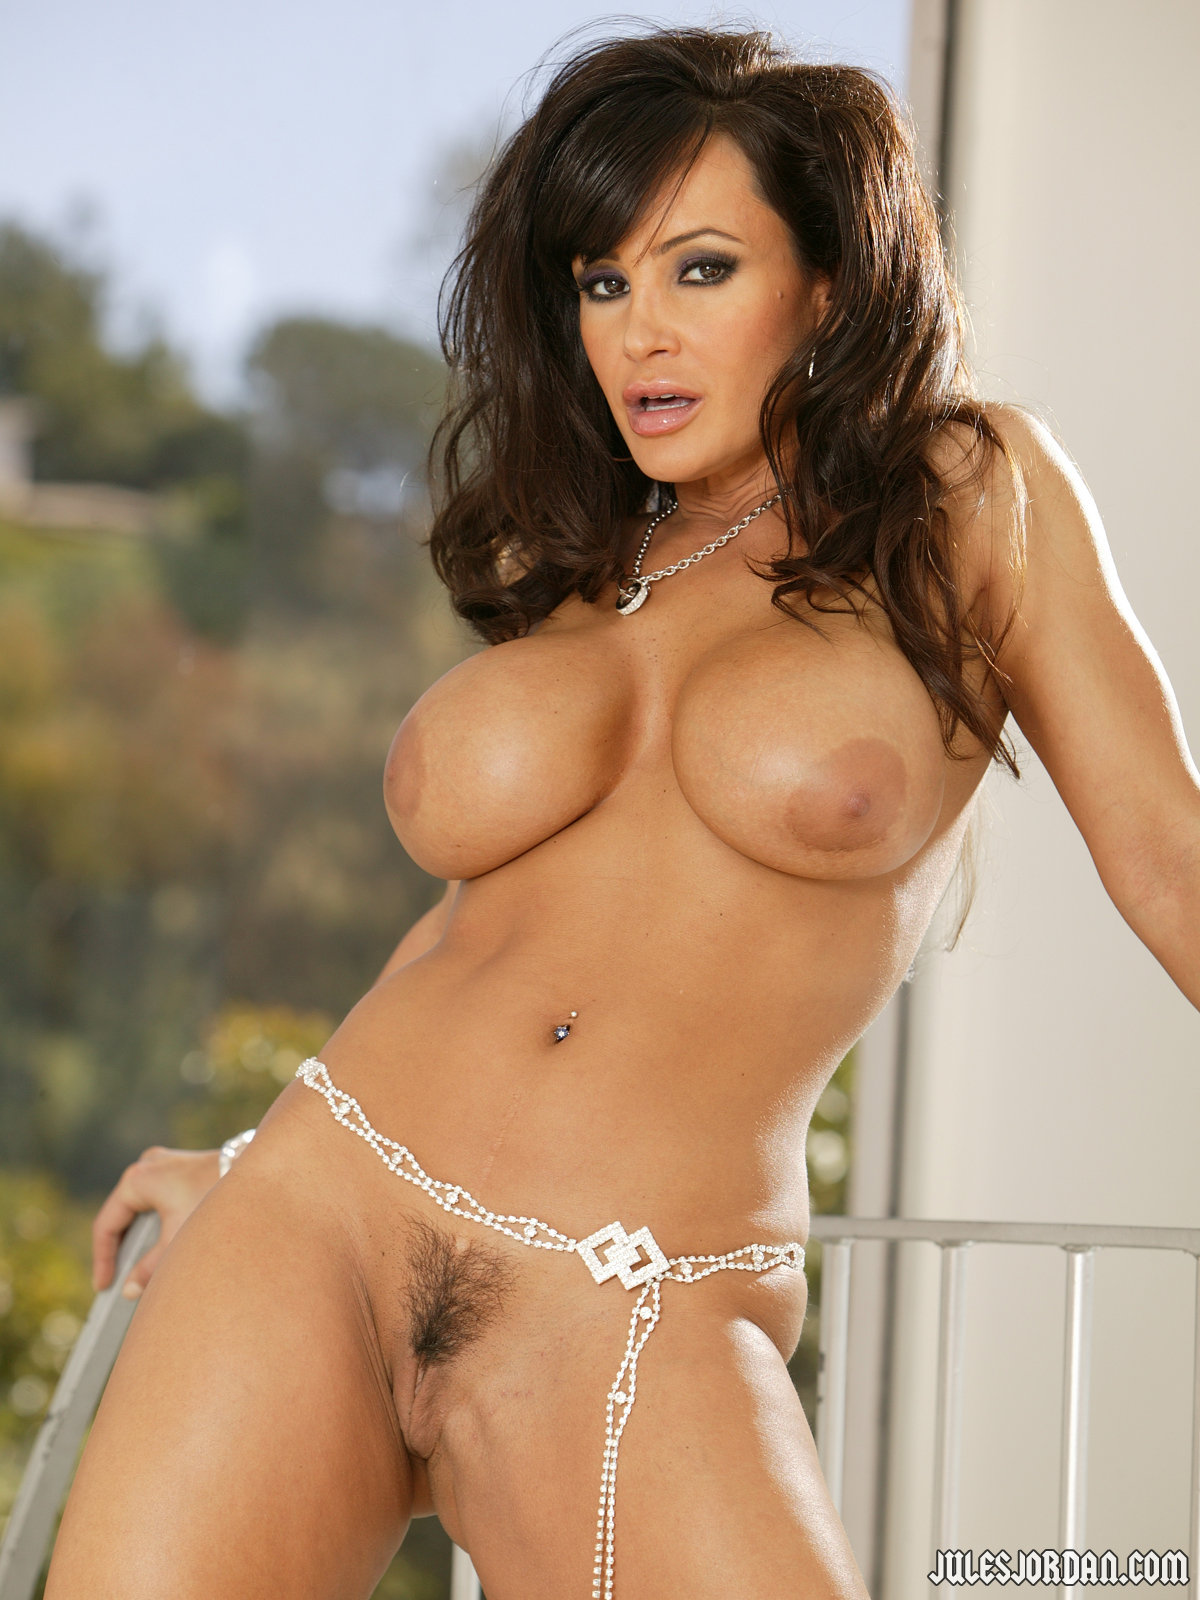 Something is. Lisa ann sexy consider